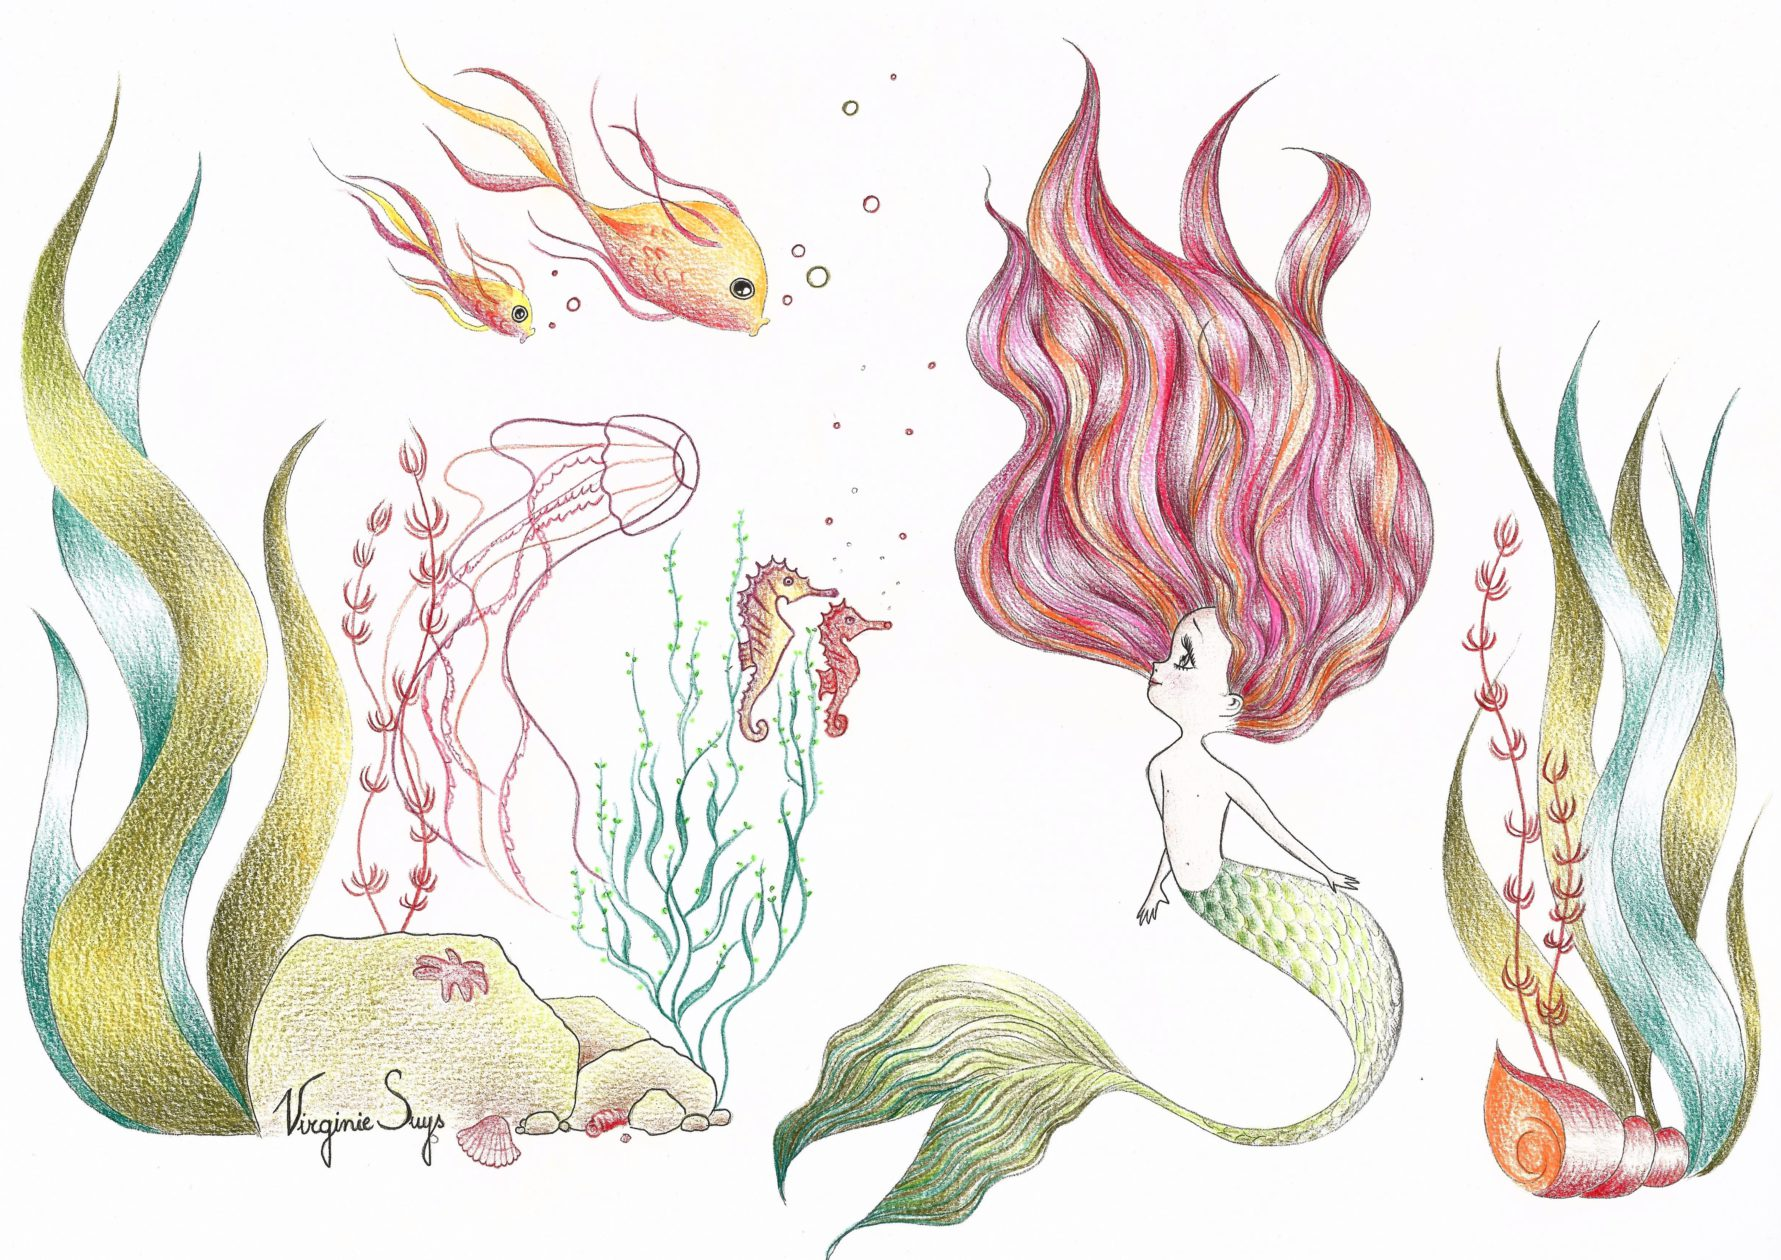 Virginie Suys Mermaid in green & red illustration